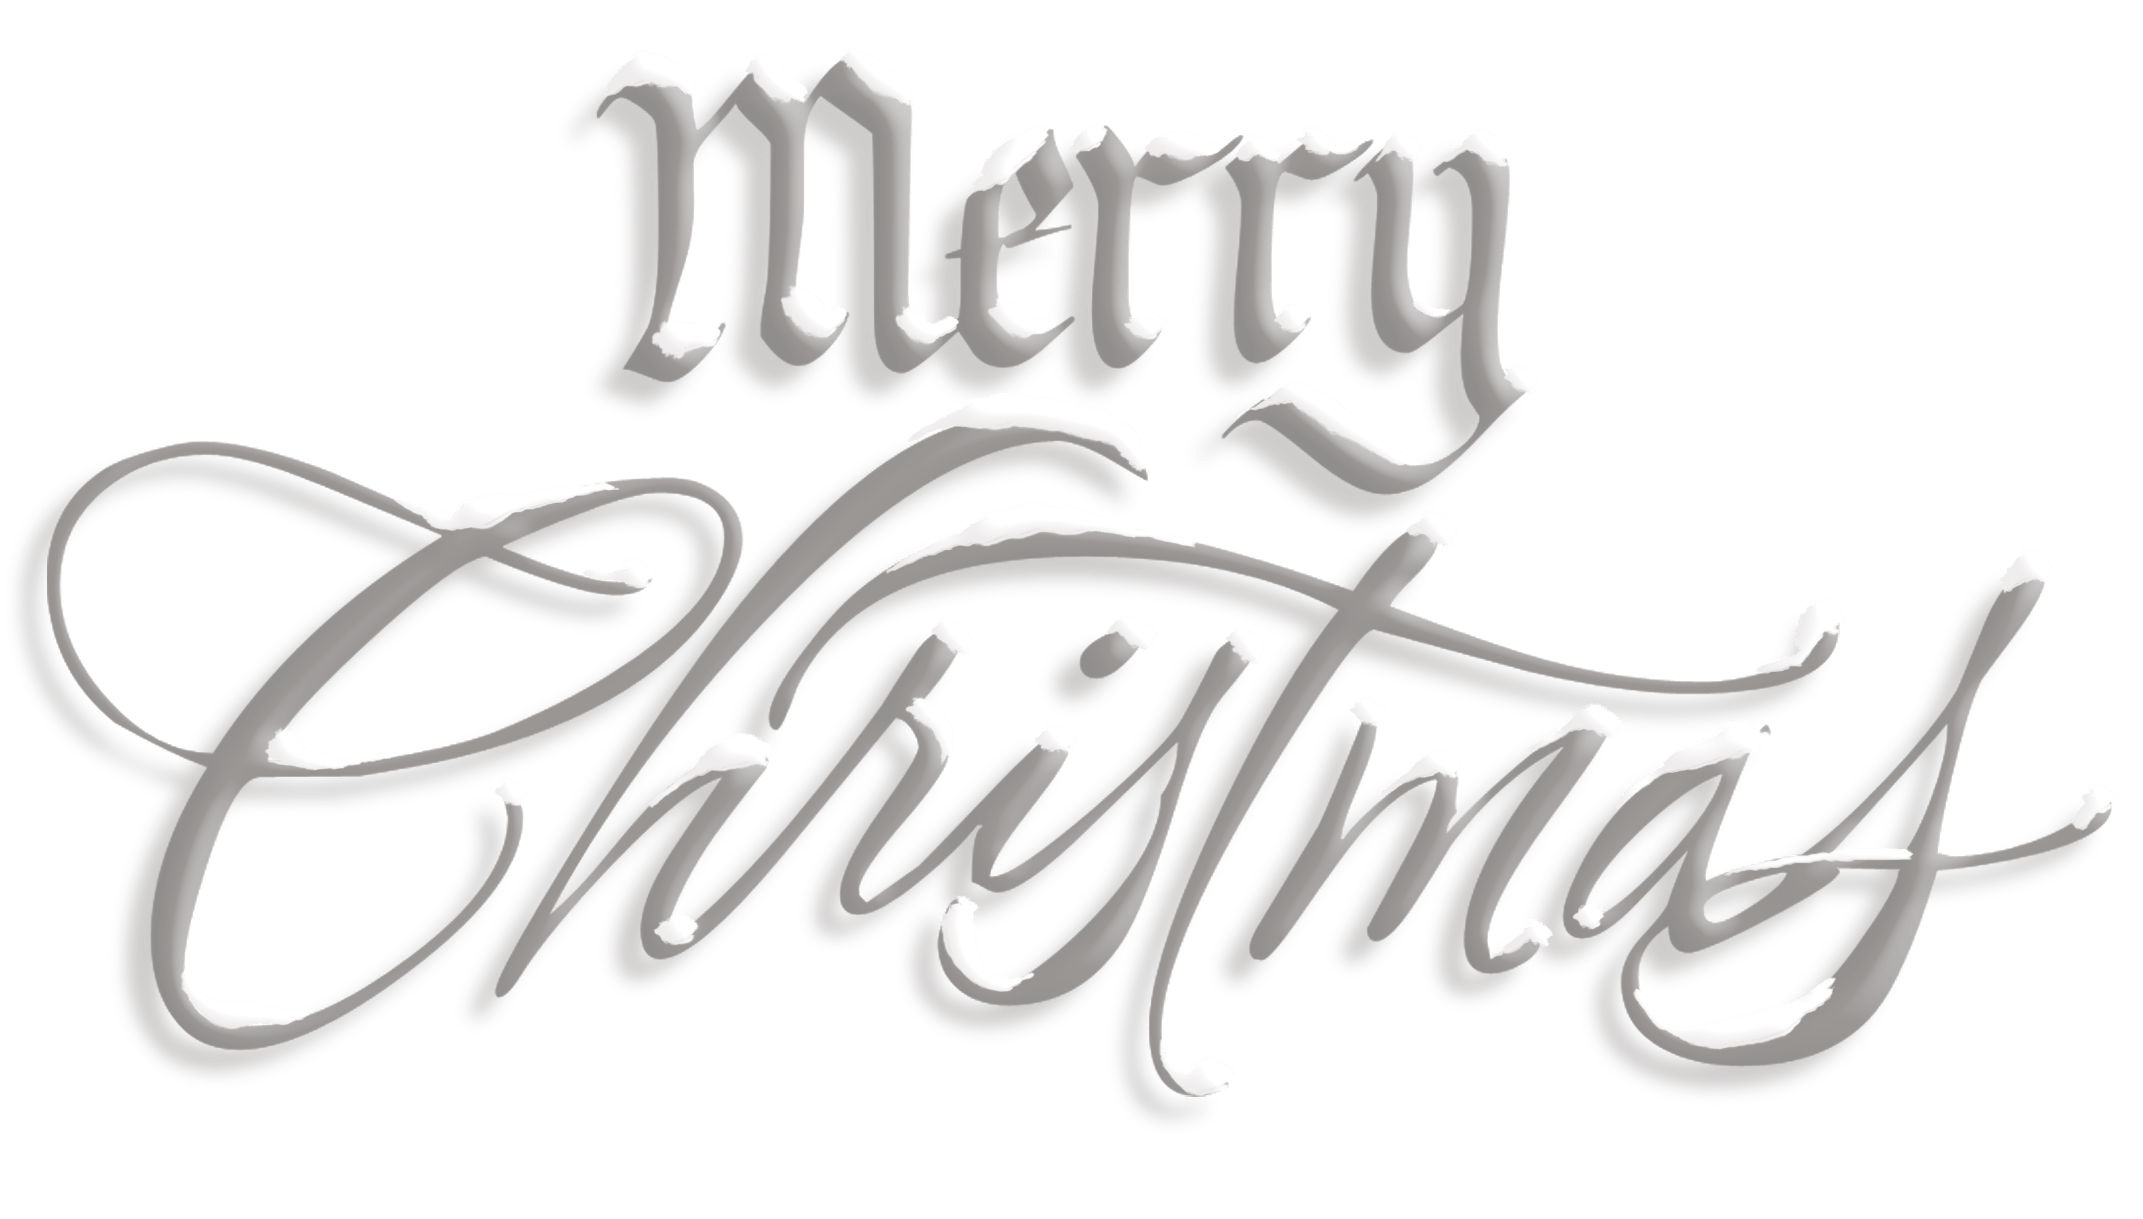 Merry Christmas Silver Snow Text transparent PNG - StickPNG